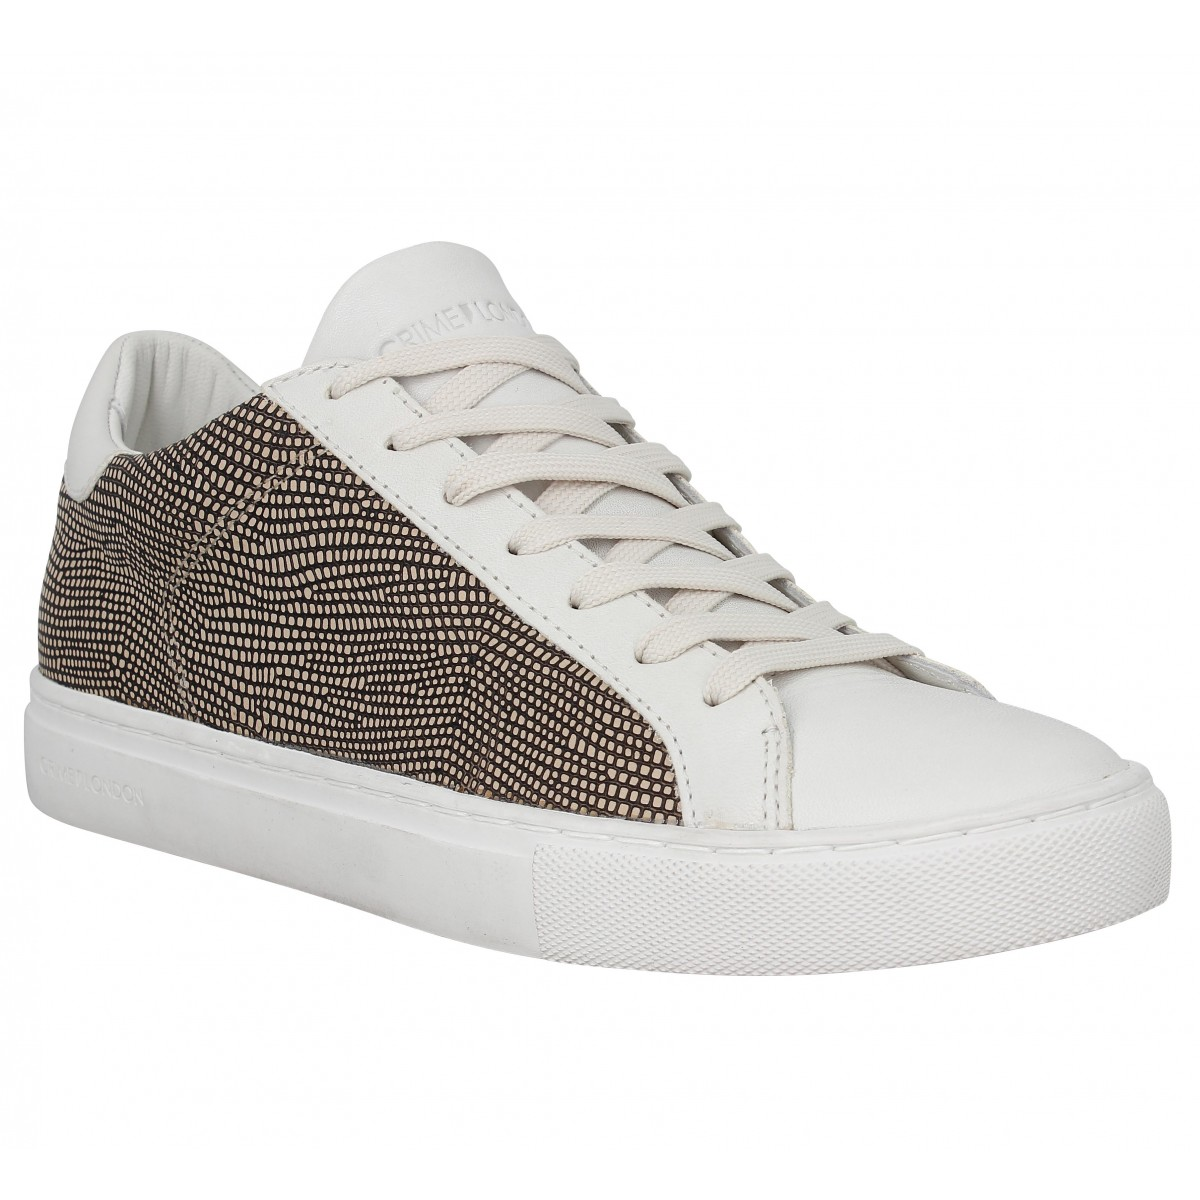 Baskets CRIME 25207 Low Femme Beige